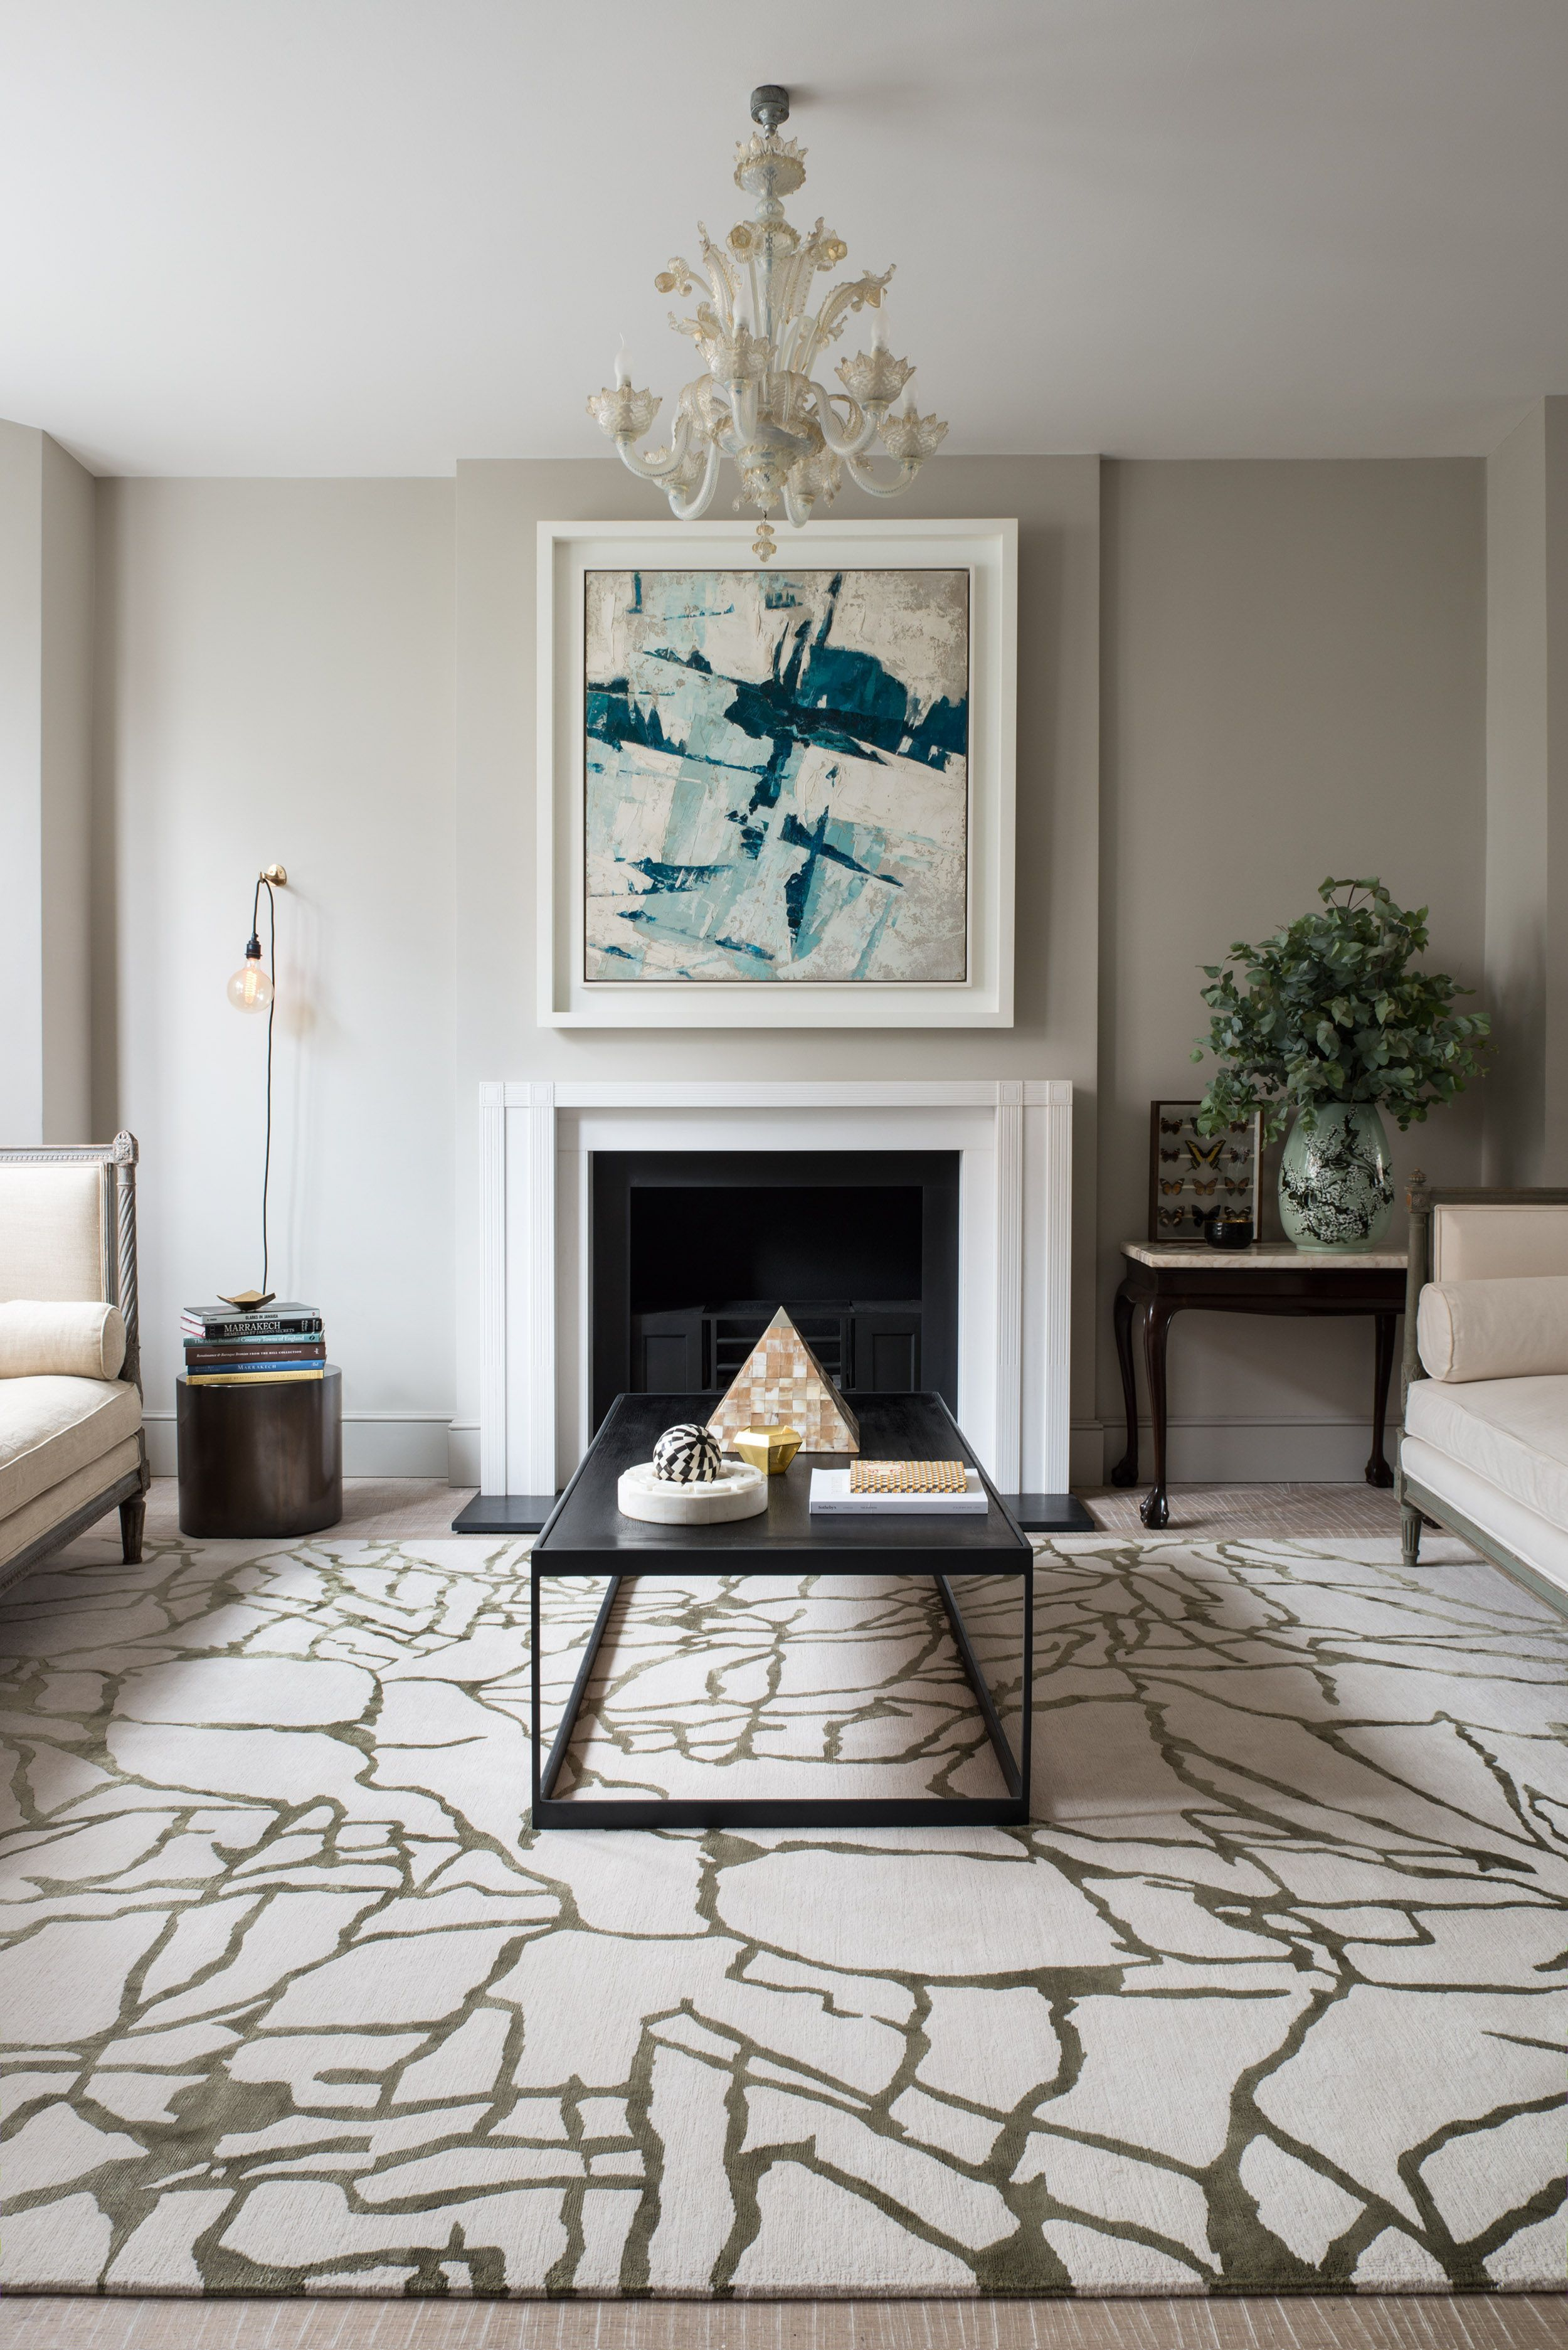 Add This Rug Design Selection To Your Own Inspirations For